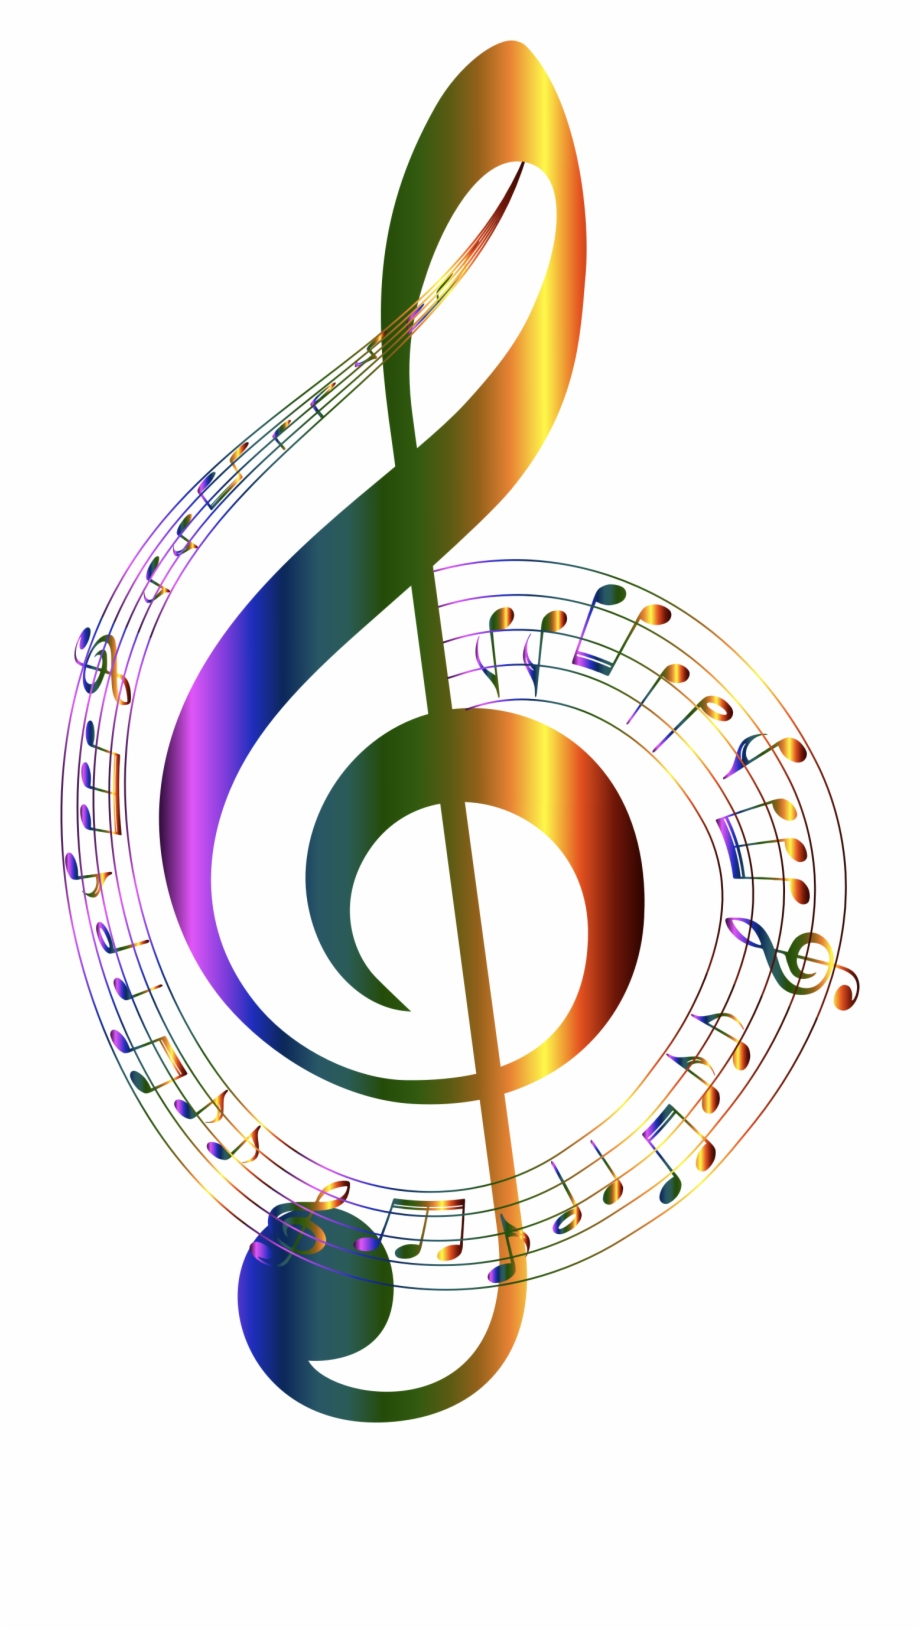 Free Music Notes Clipart Transparent Background, Download.